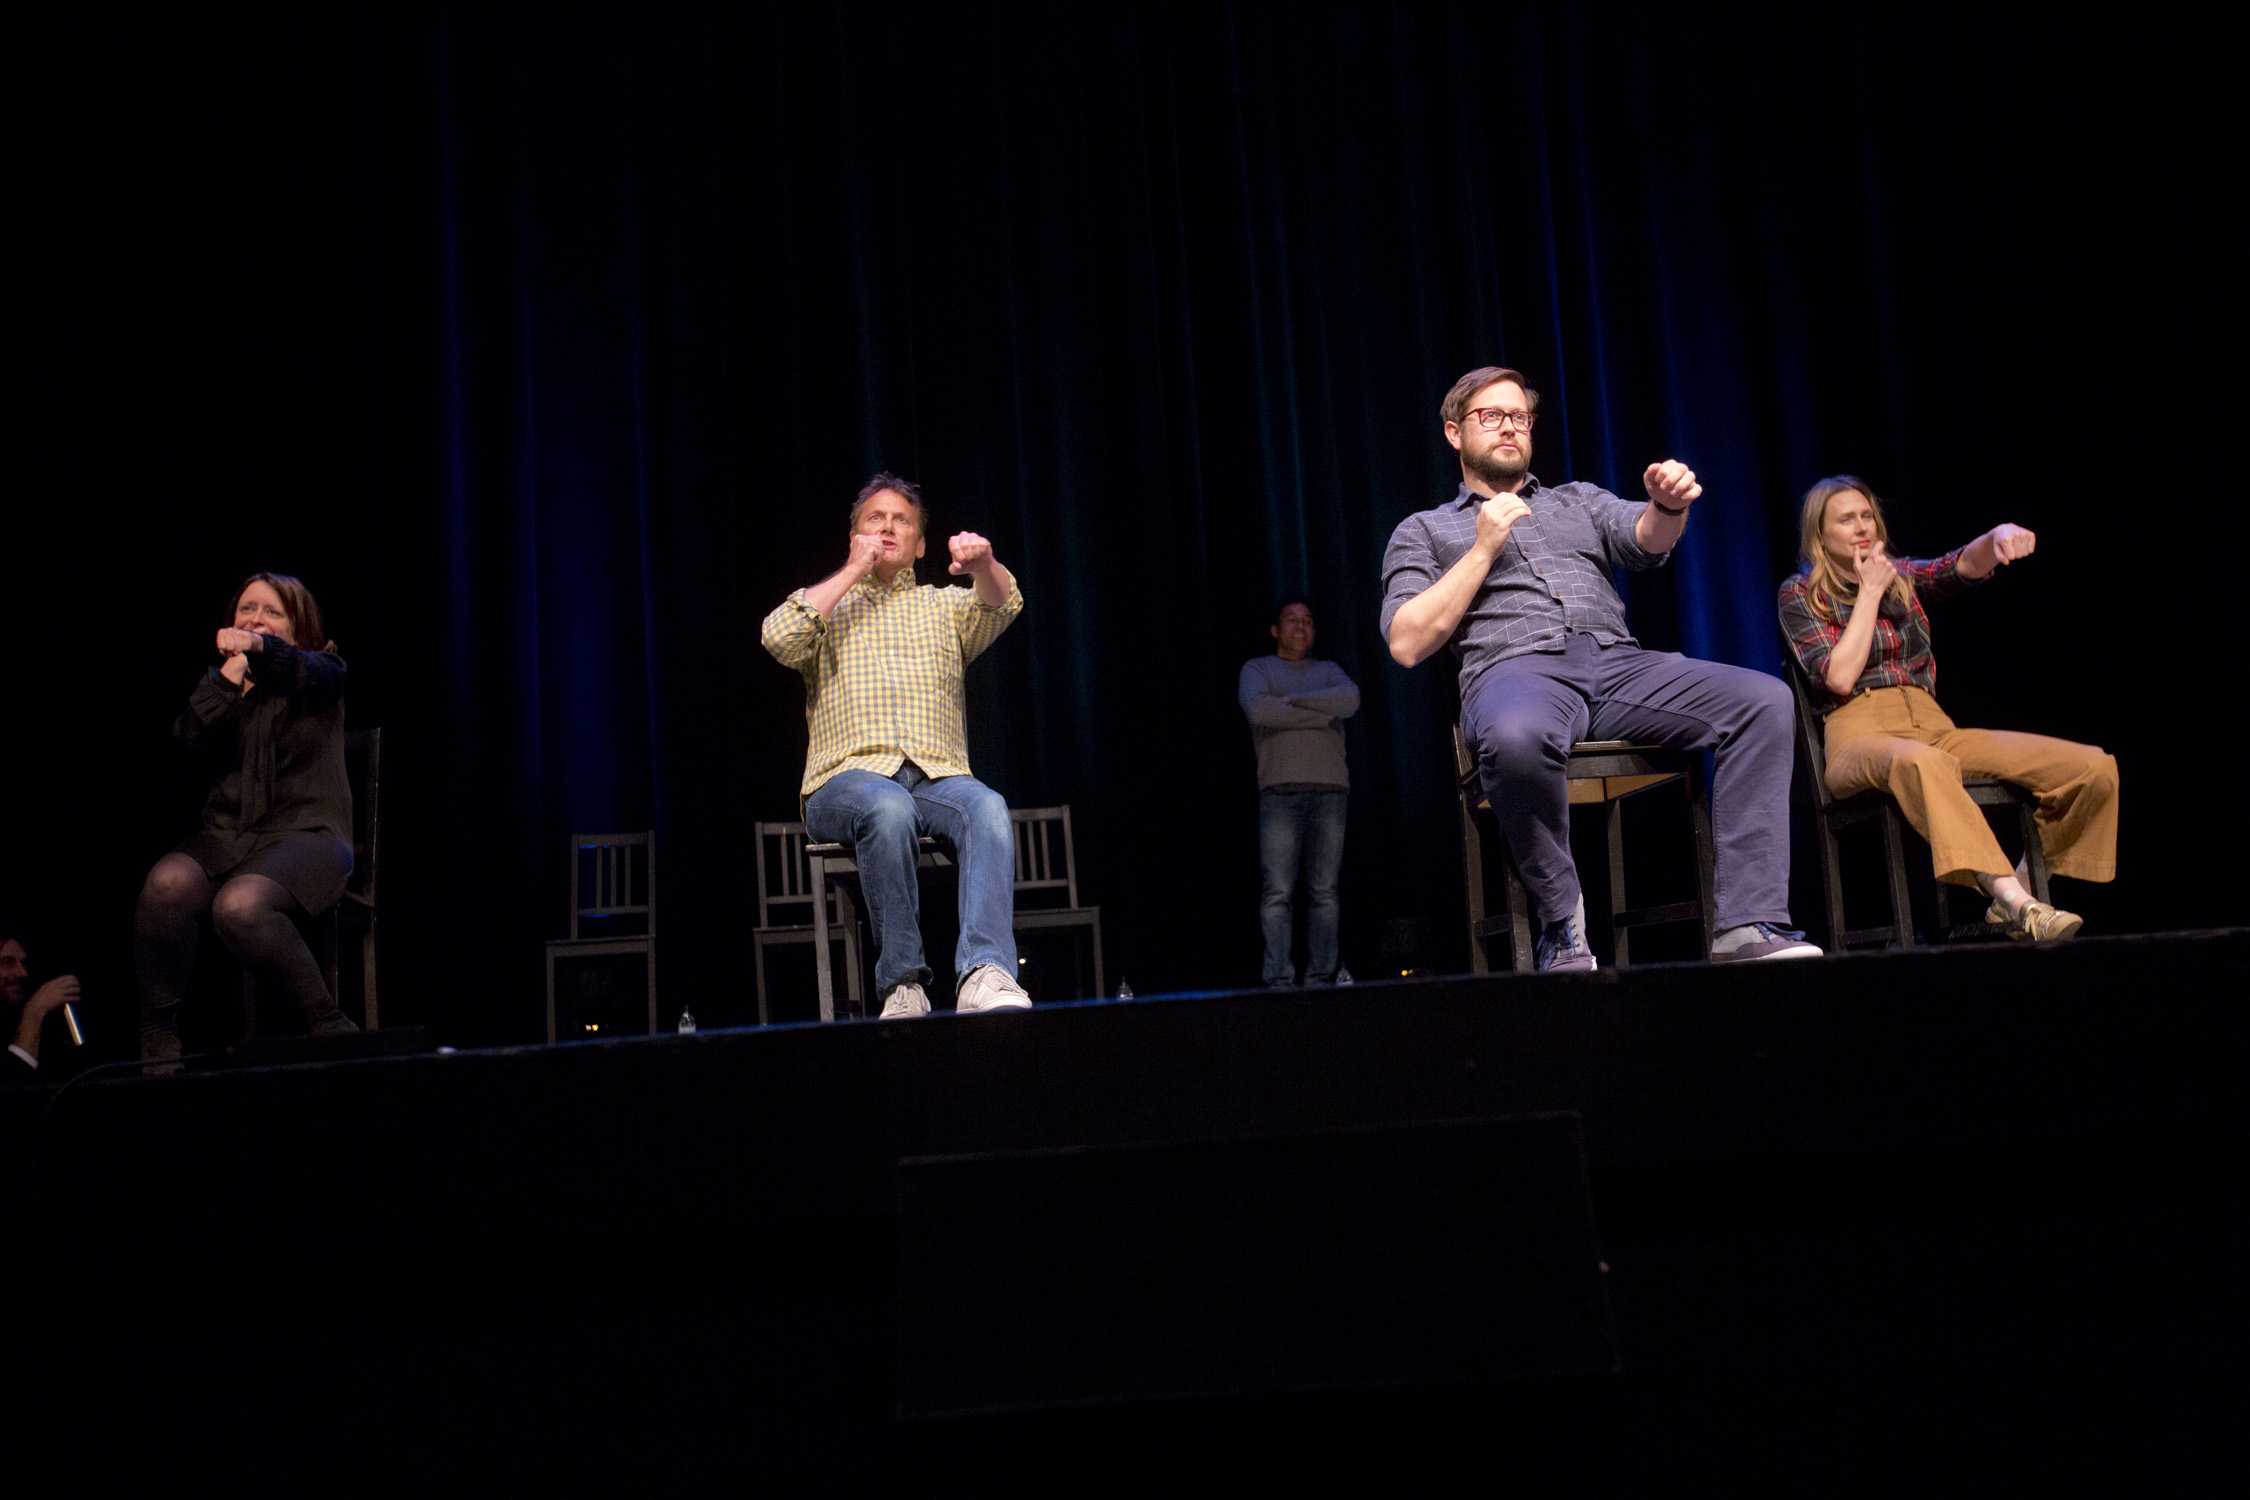 Rachel Dratch, Oscar Nunez, Cole Stratton and Jessica Makinson at Theme Park Improv 2017 at SF Sketchfest. Photo by Tommy Lau.